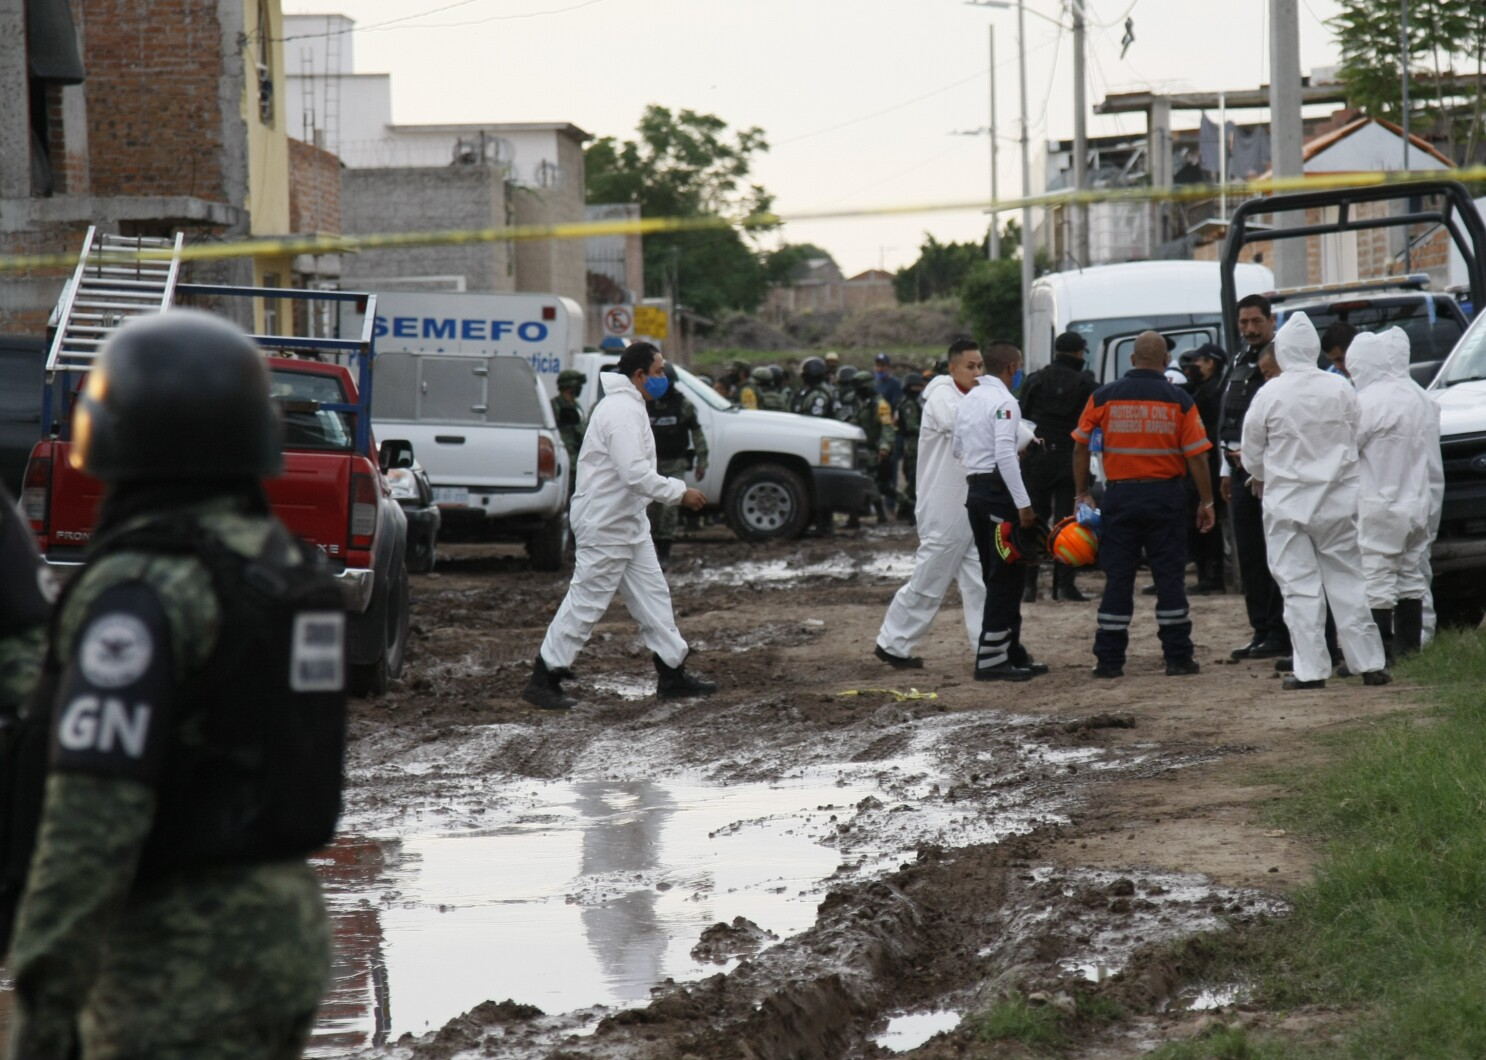 24 Dead In Attack On Drug Rehab Center In Mexico Los Angeles Times